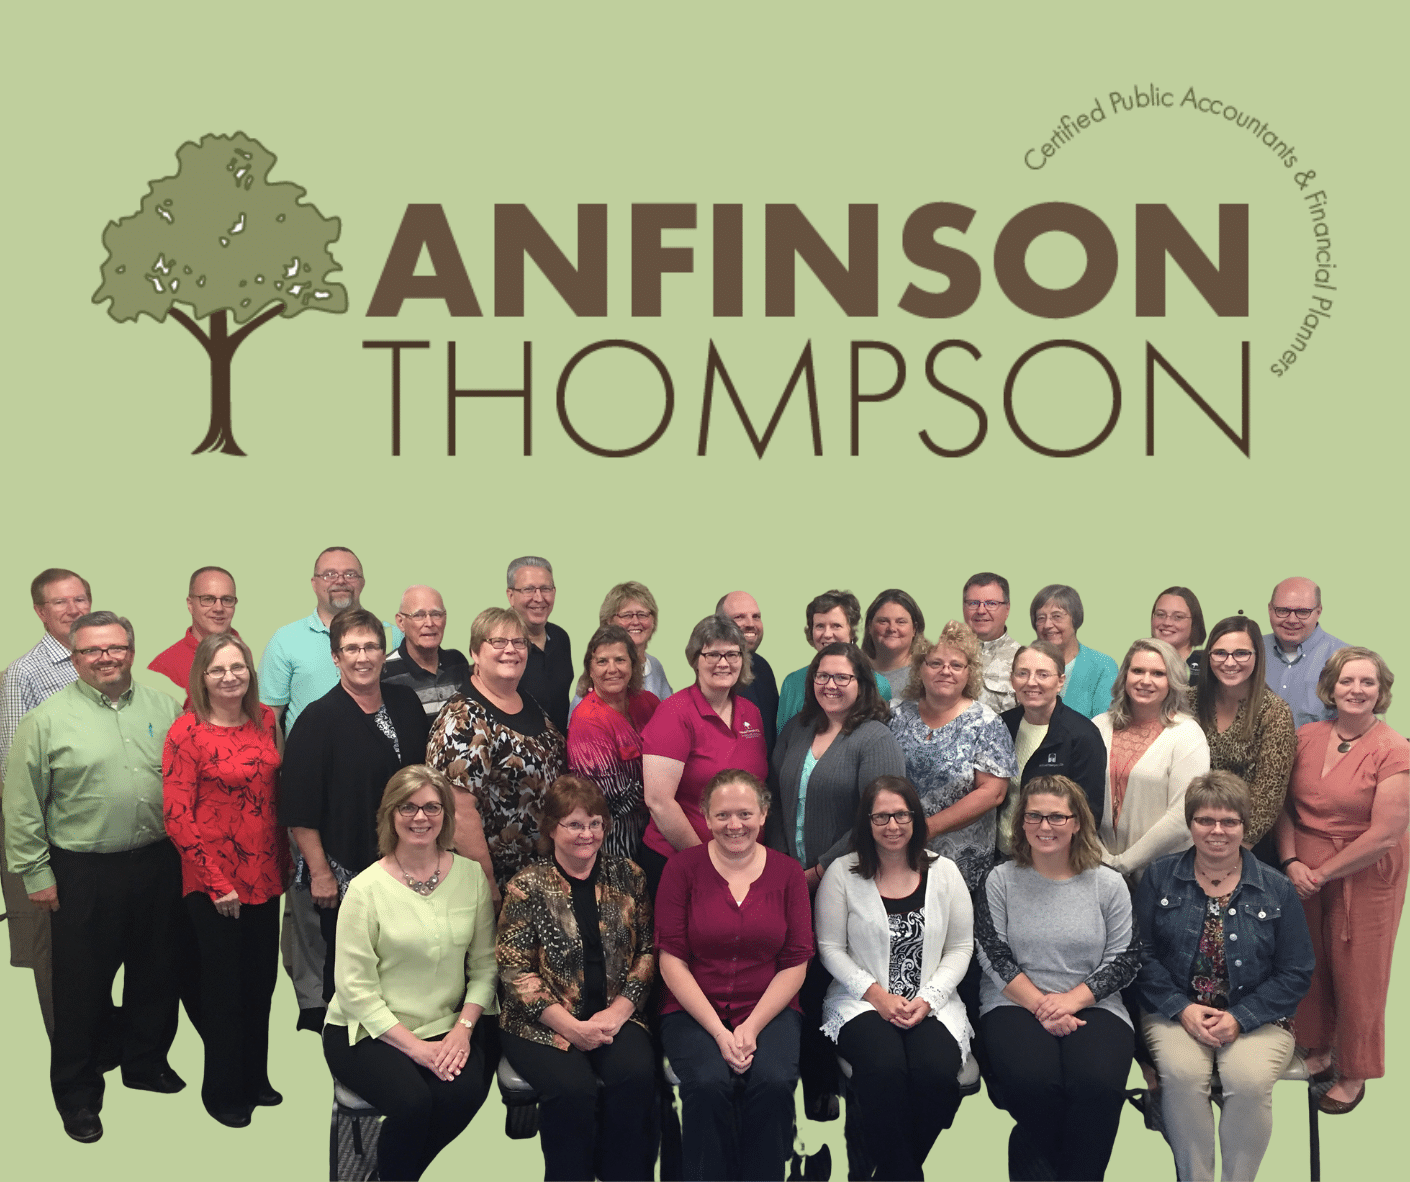 Anfinson Thompson Team Members